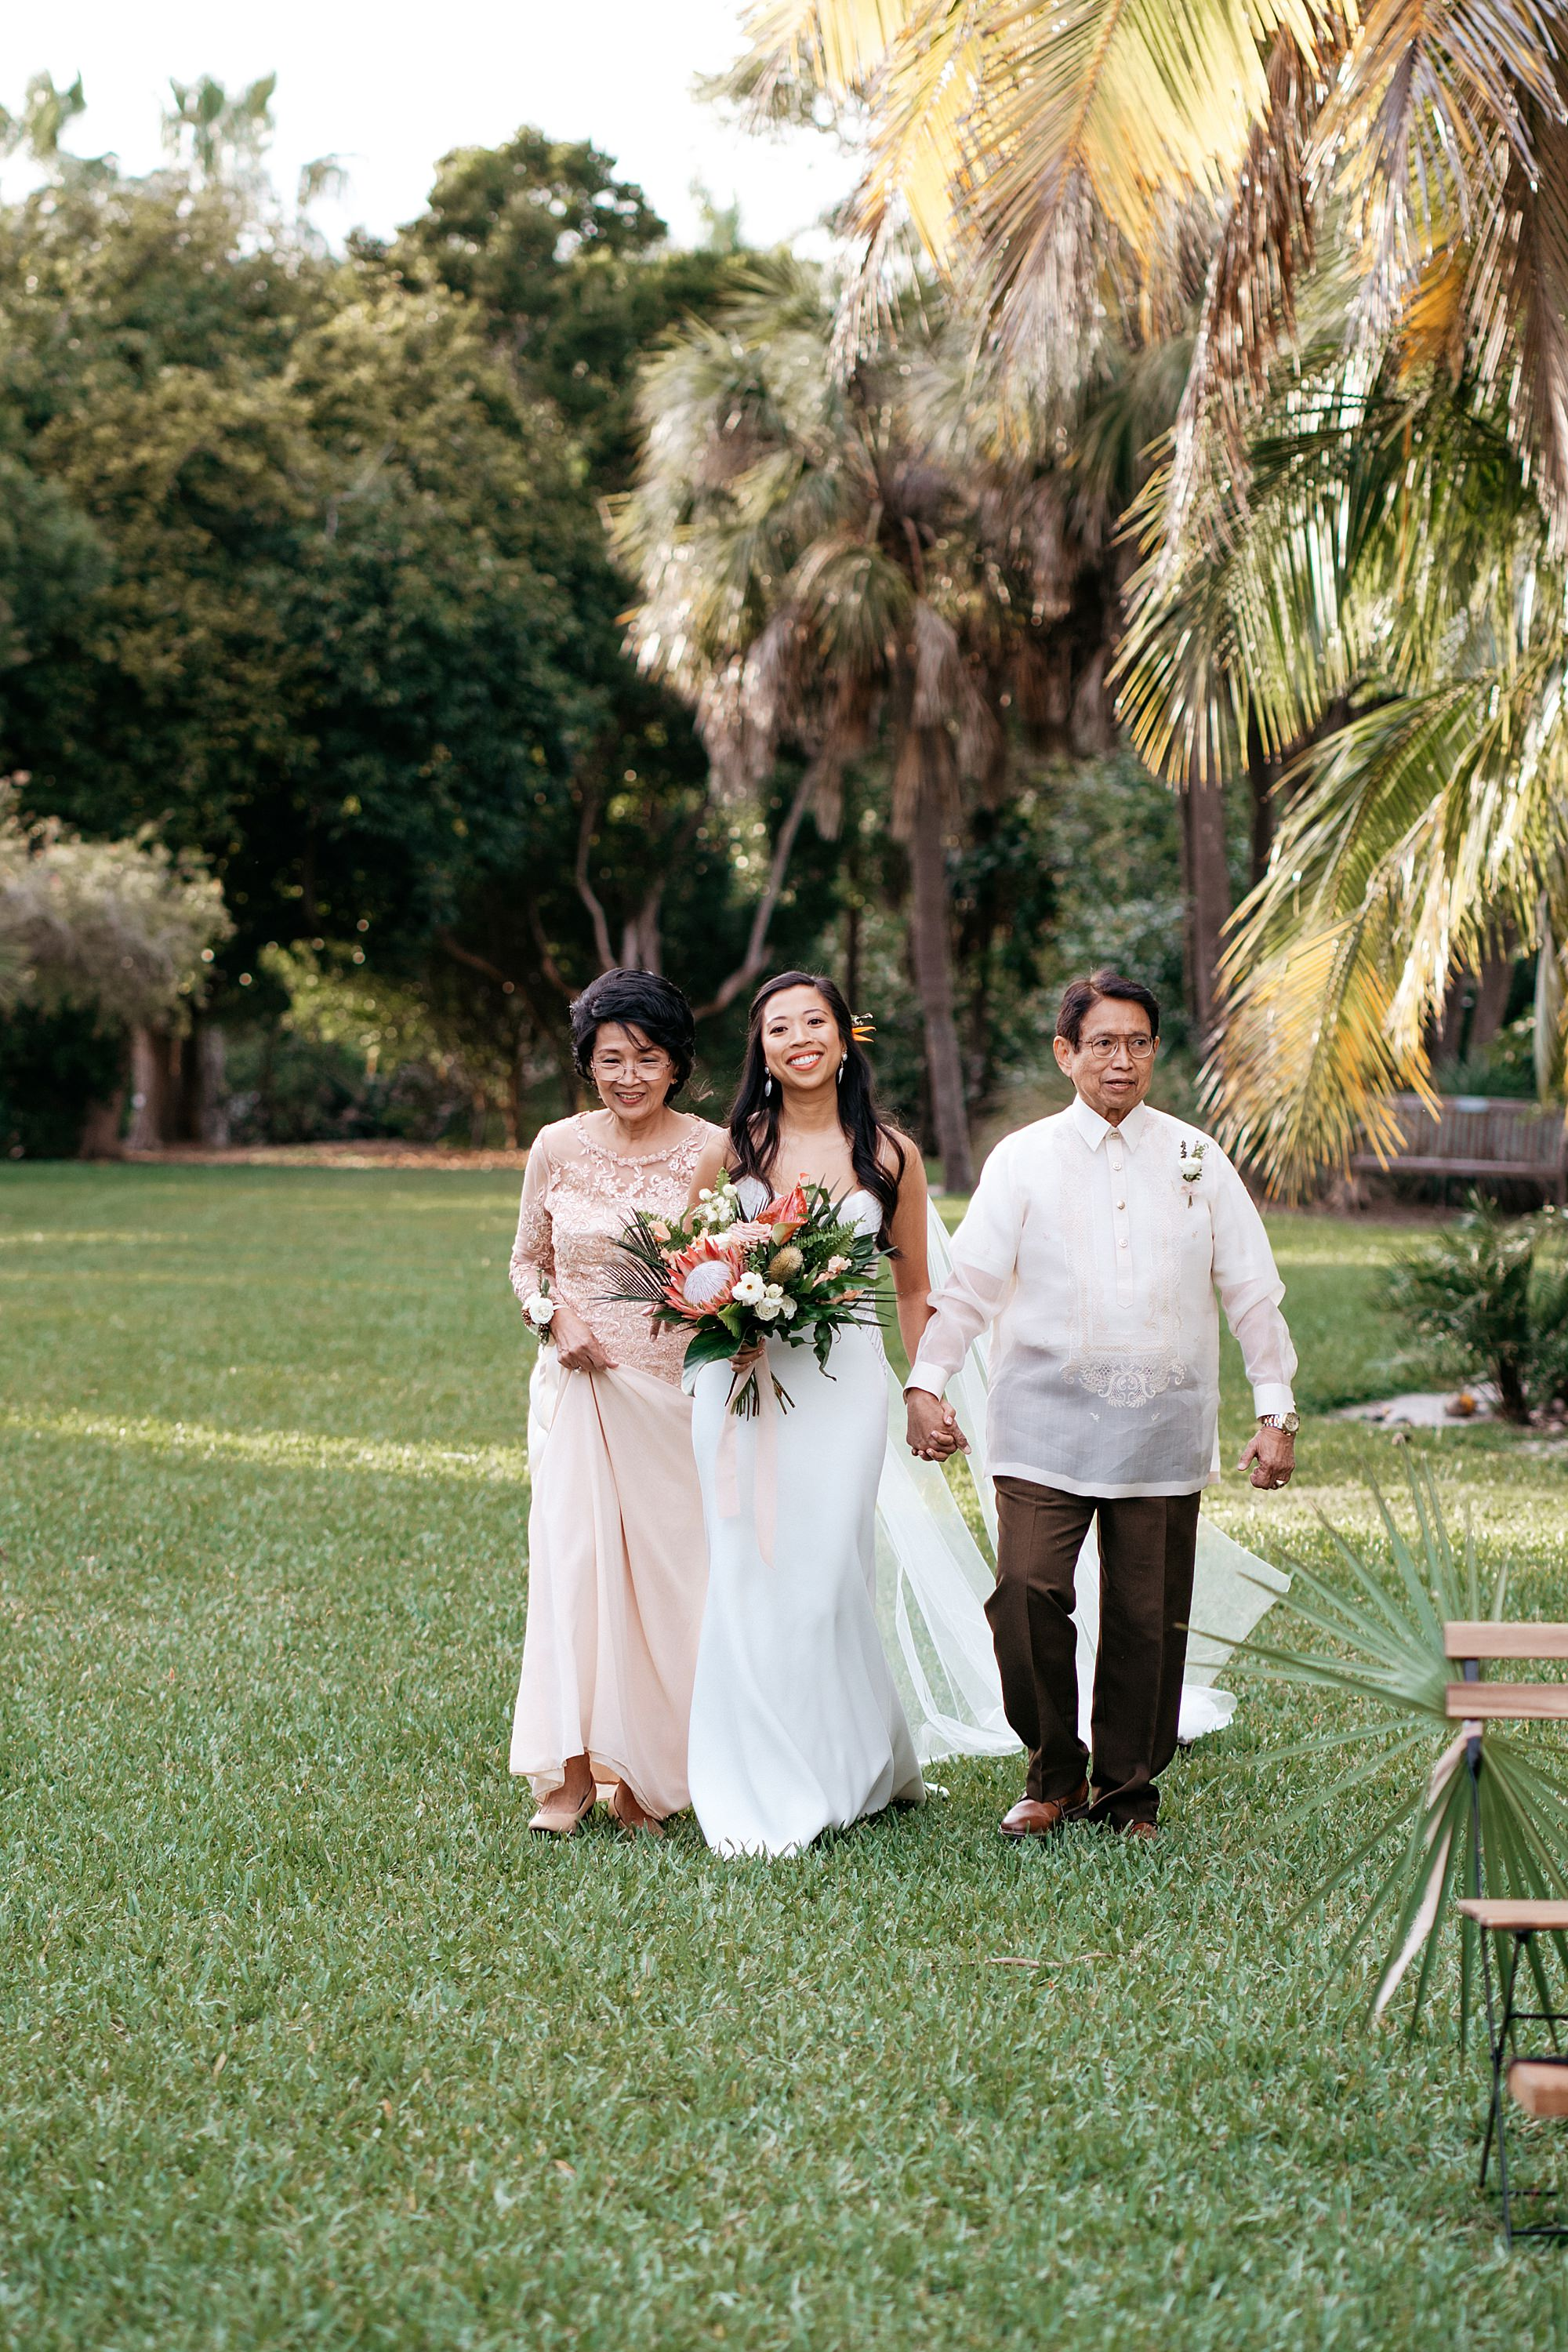 natural wedding photography miami the kampong 0450 1